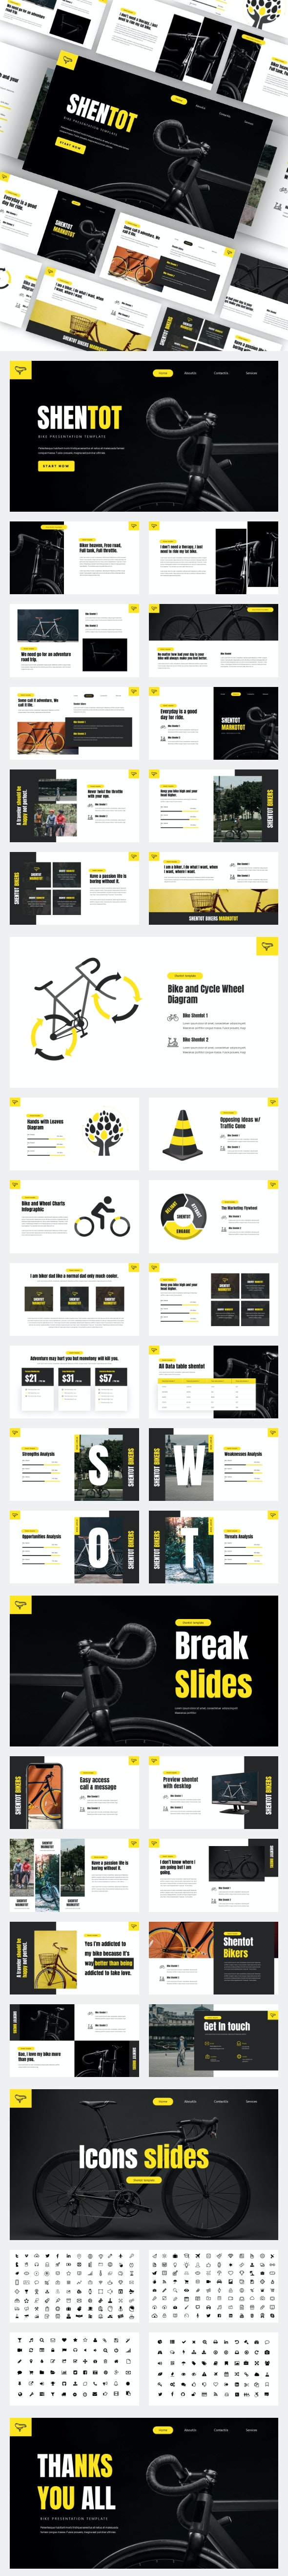 Shentot - Bicycle Sports Club Powerpoint Template - Business PowerPoint Templates